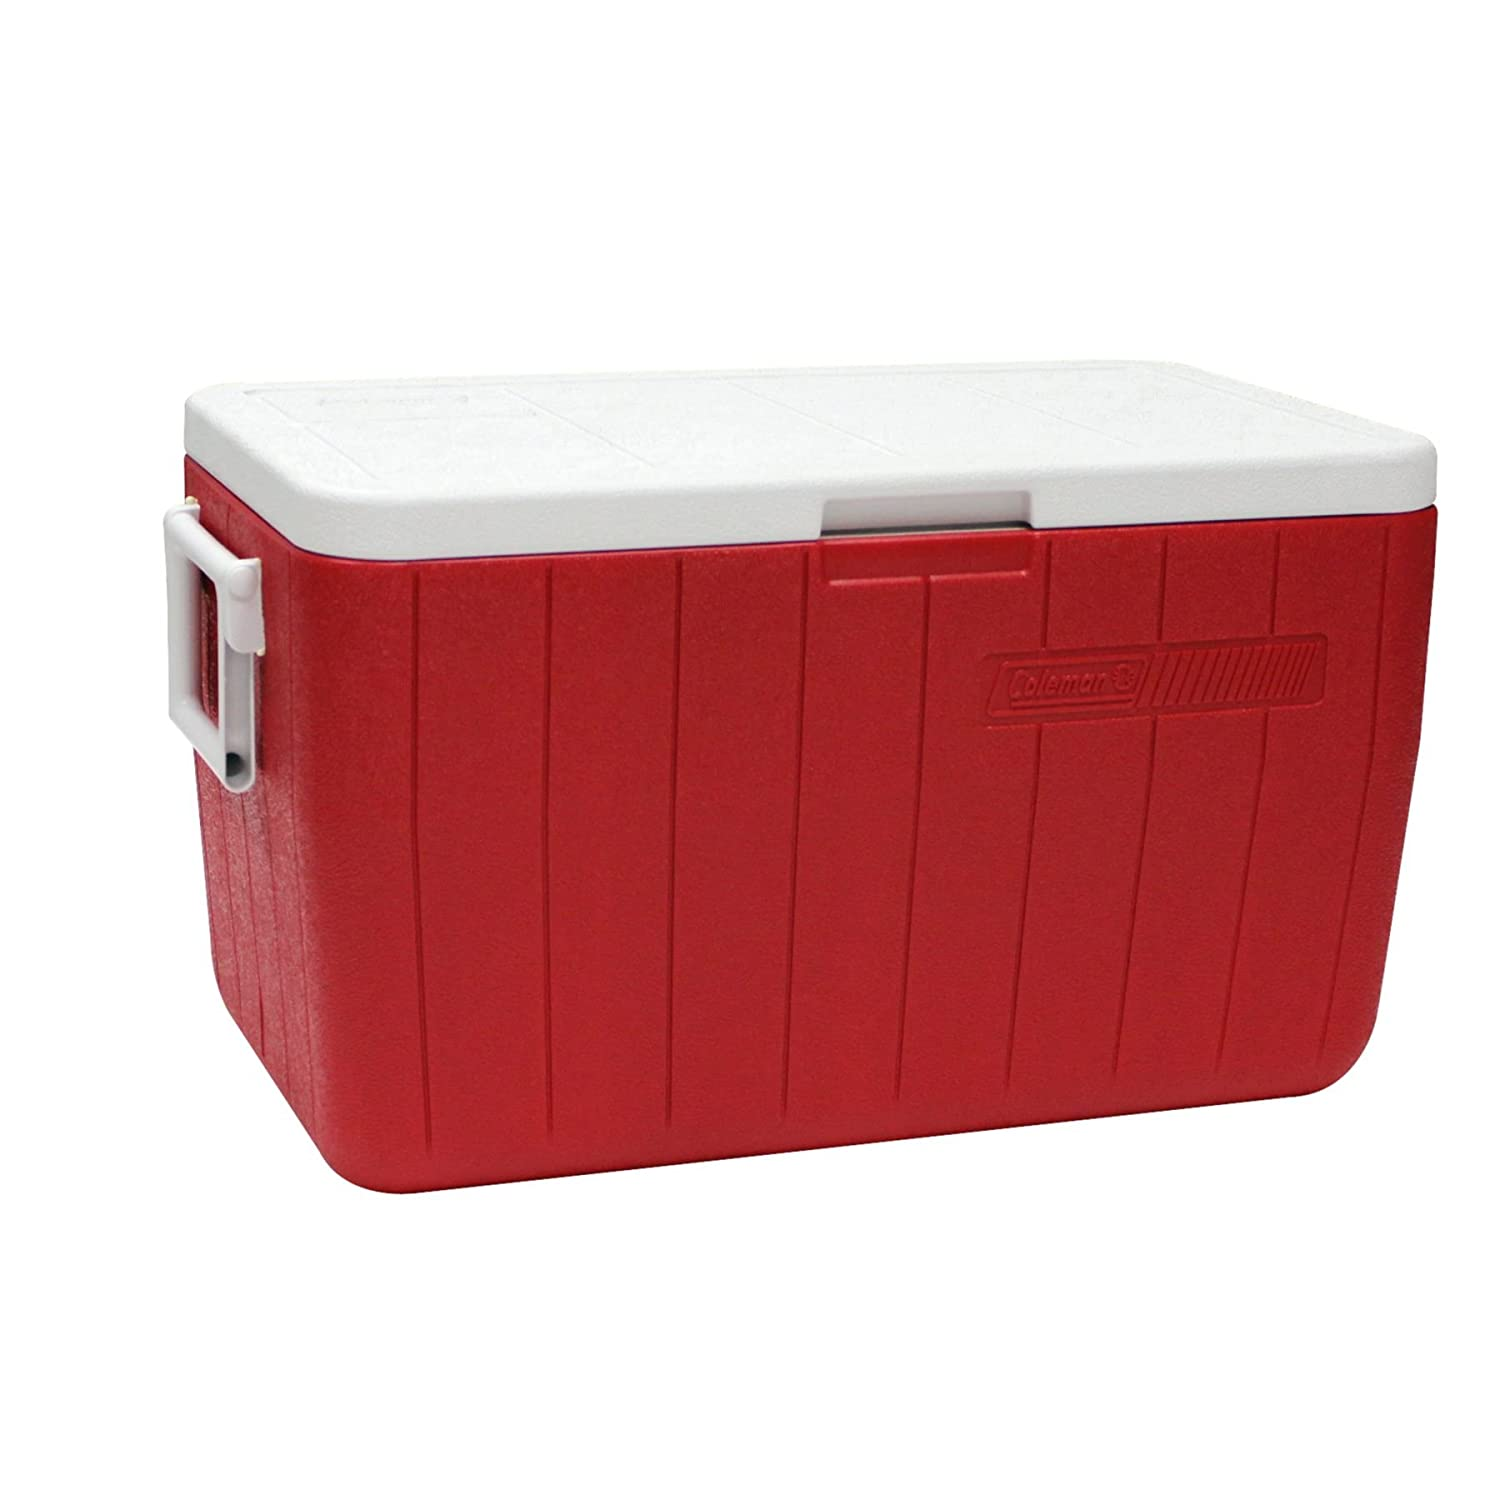 $22.38 (was $39.99) Coleman 48 Quart Performance Cooler